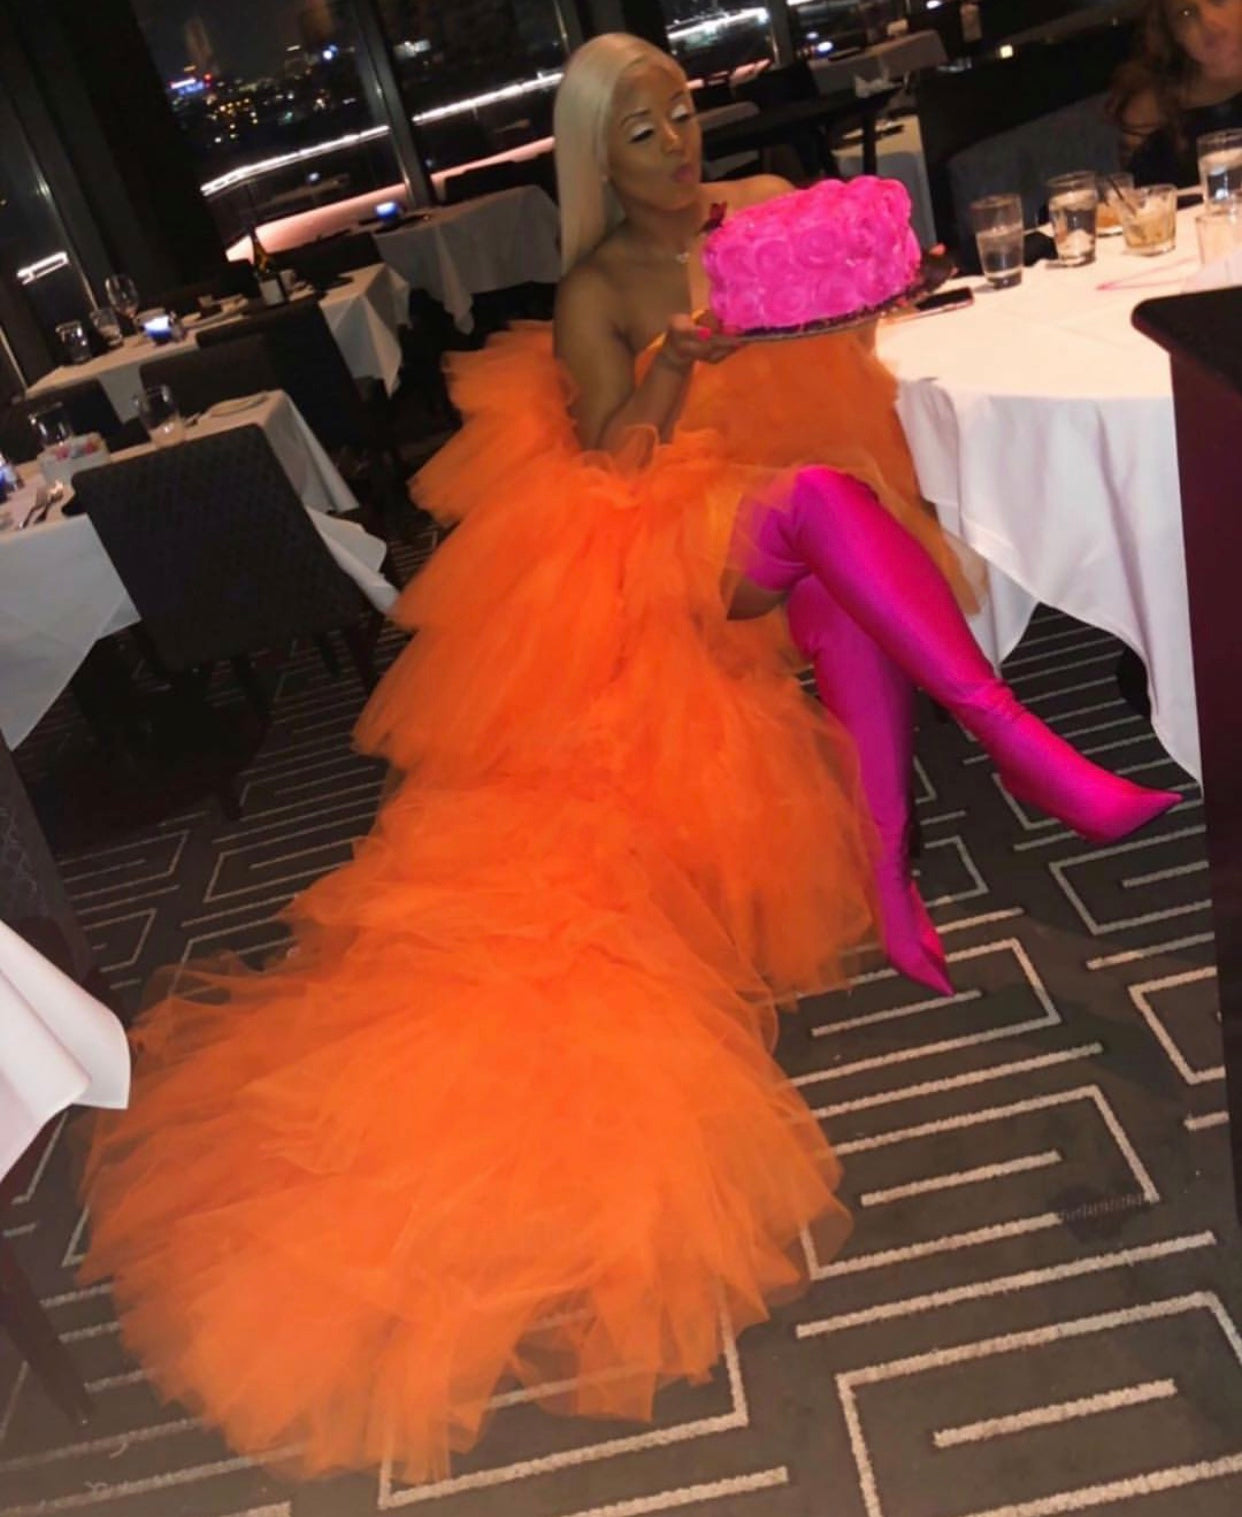 Oyemwen Tiered High Low Tulle Maxi Tutu Dress Orange (Custom Colors Available)